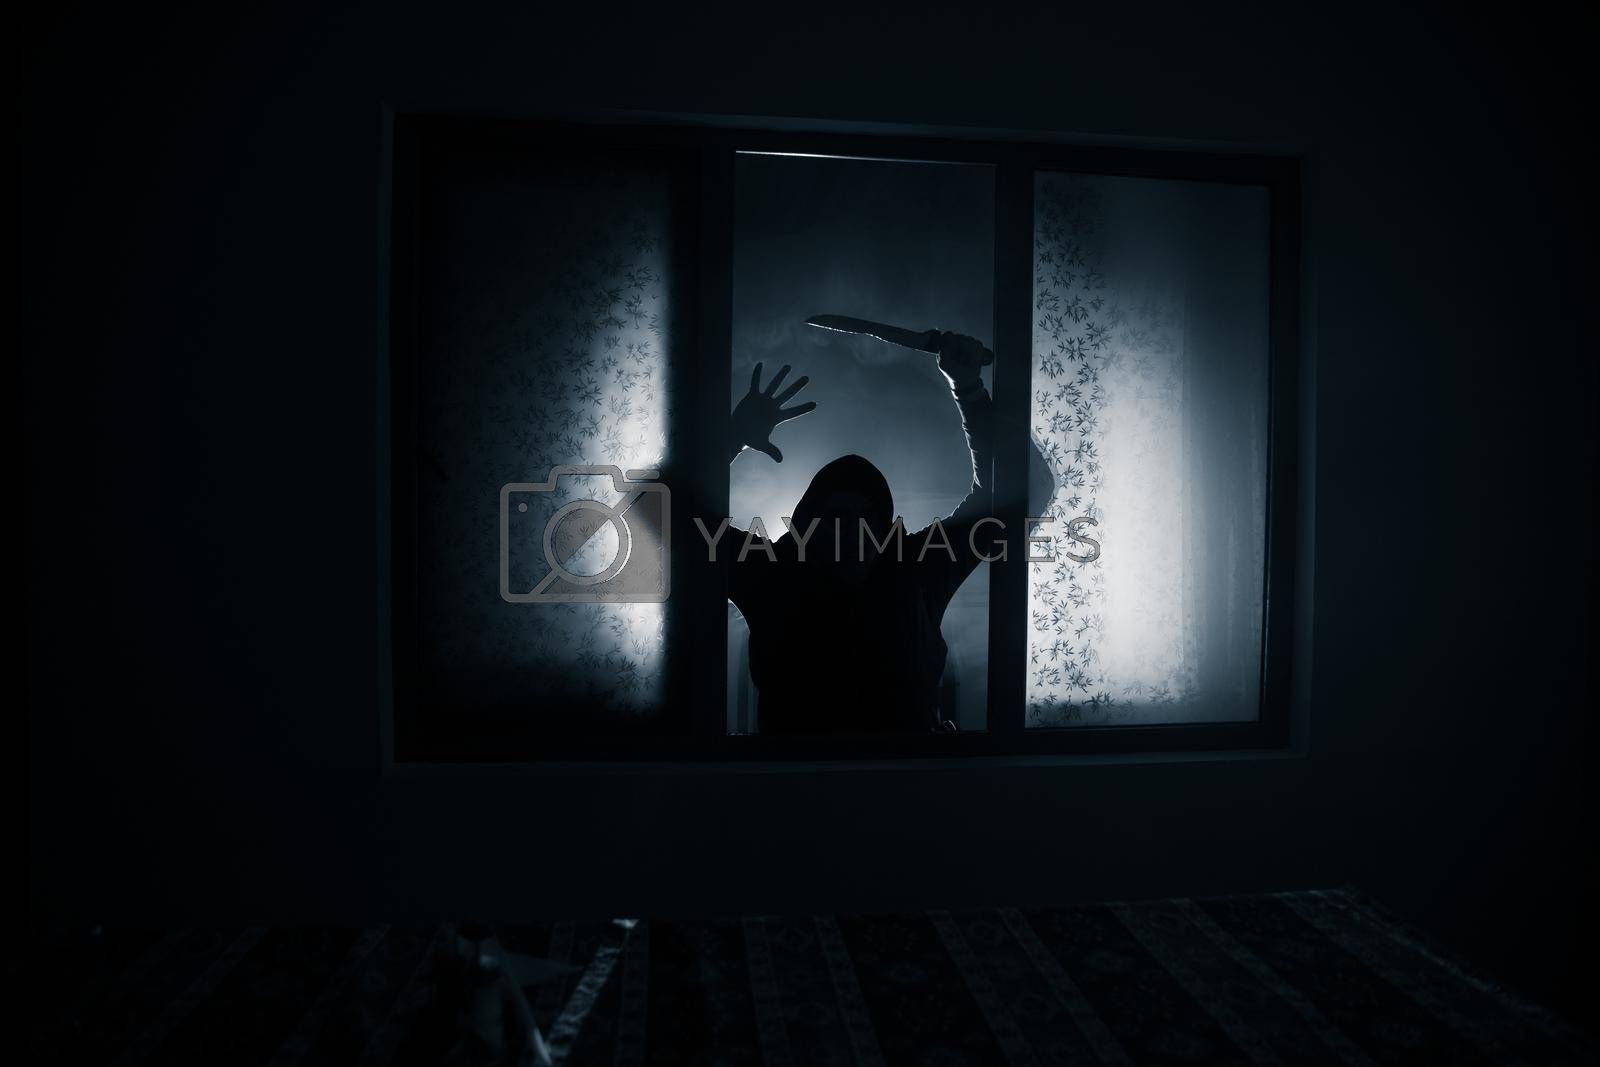 Royalty free image of Silhouette of an unknown shadow figure on a door through a closed glass door. The silhouette of a human in front of a window at night. by Zeferli